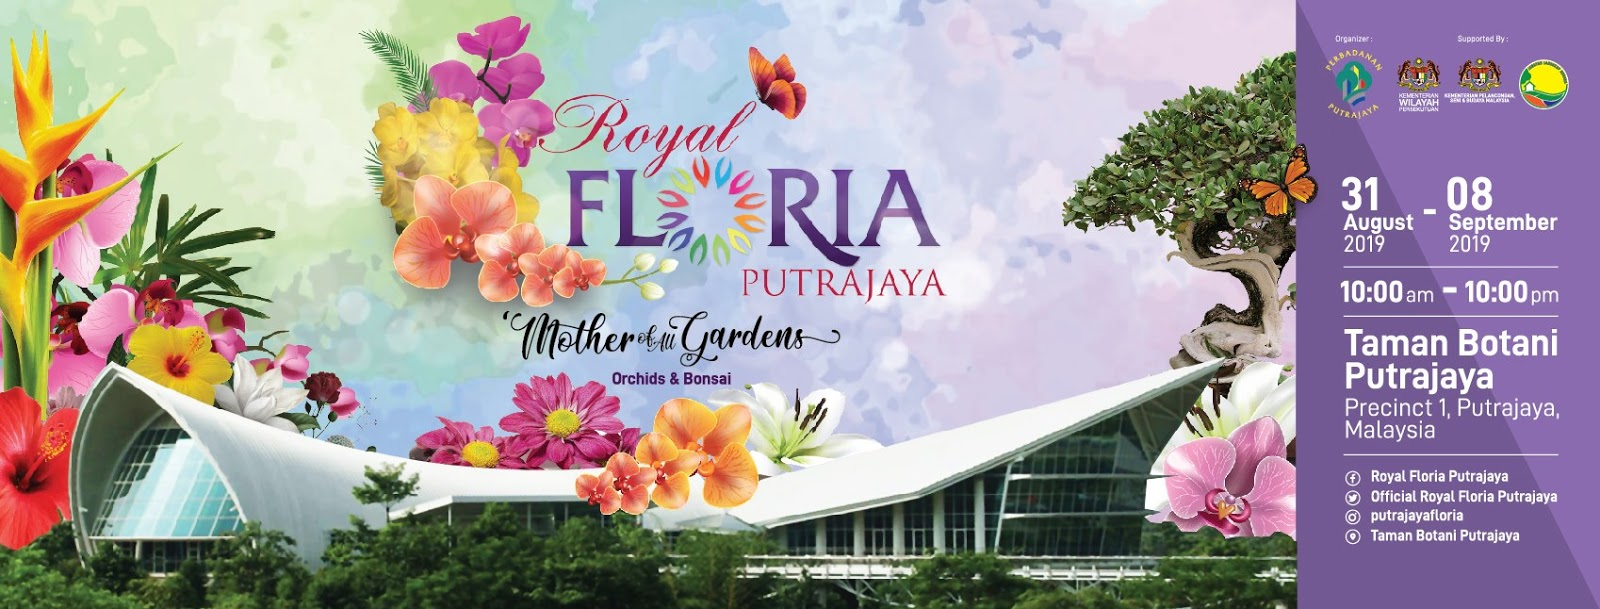 Royal Floria Putrajaya 2019 - The Other Side of Me